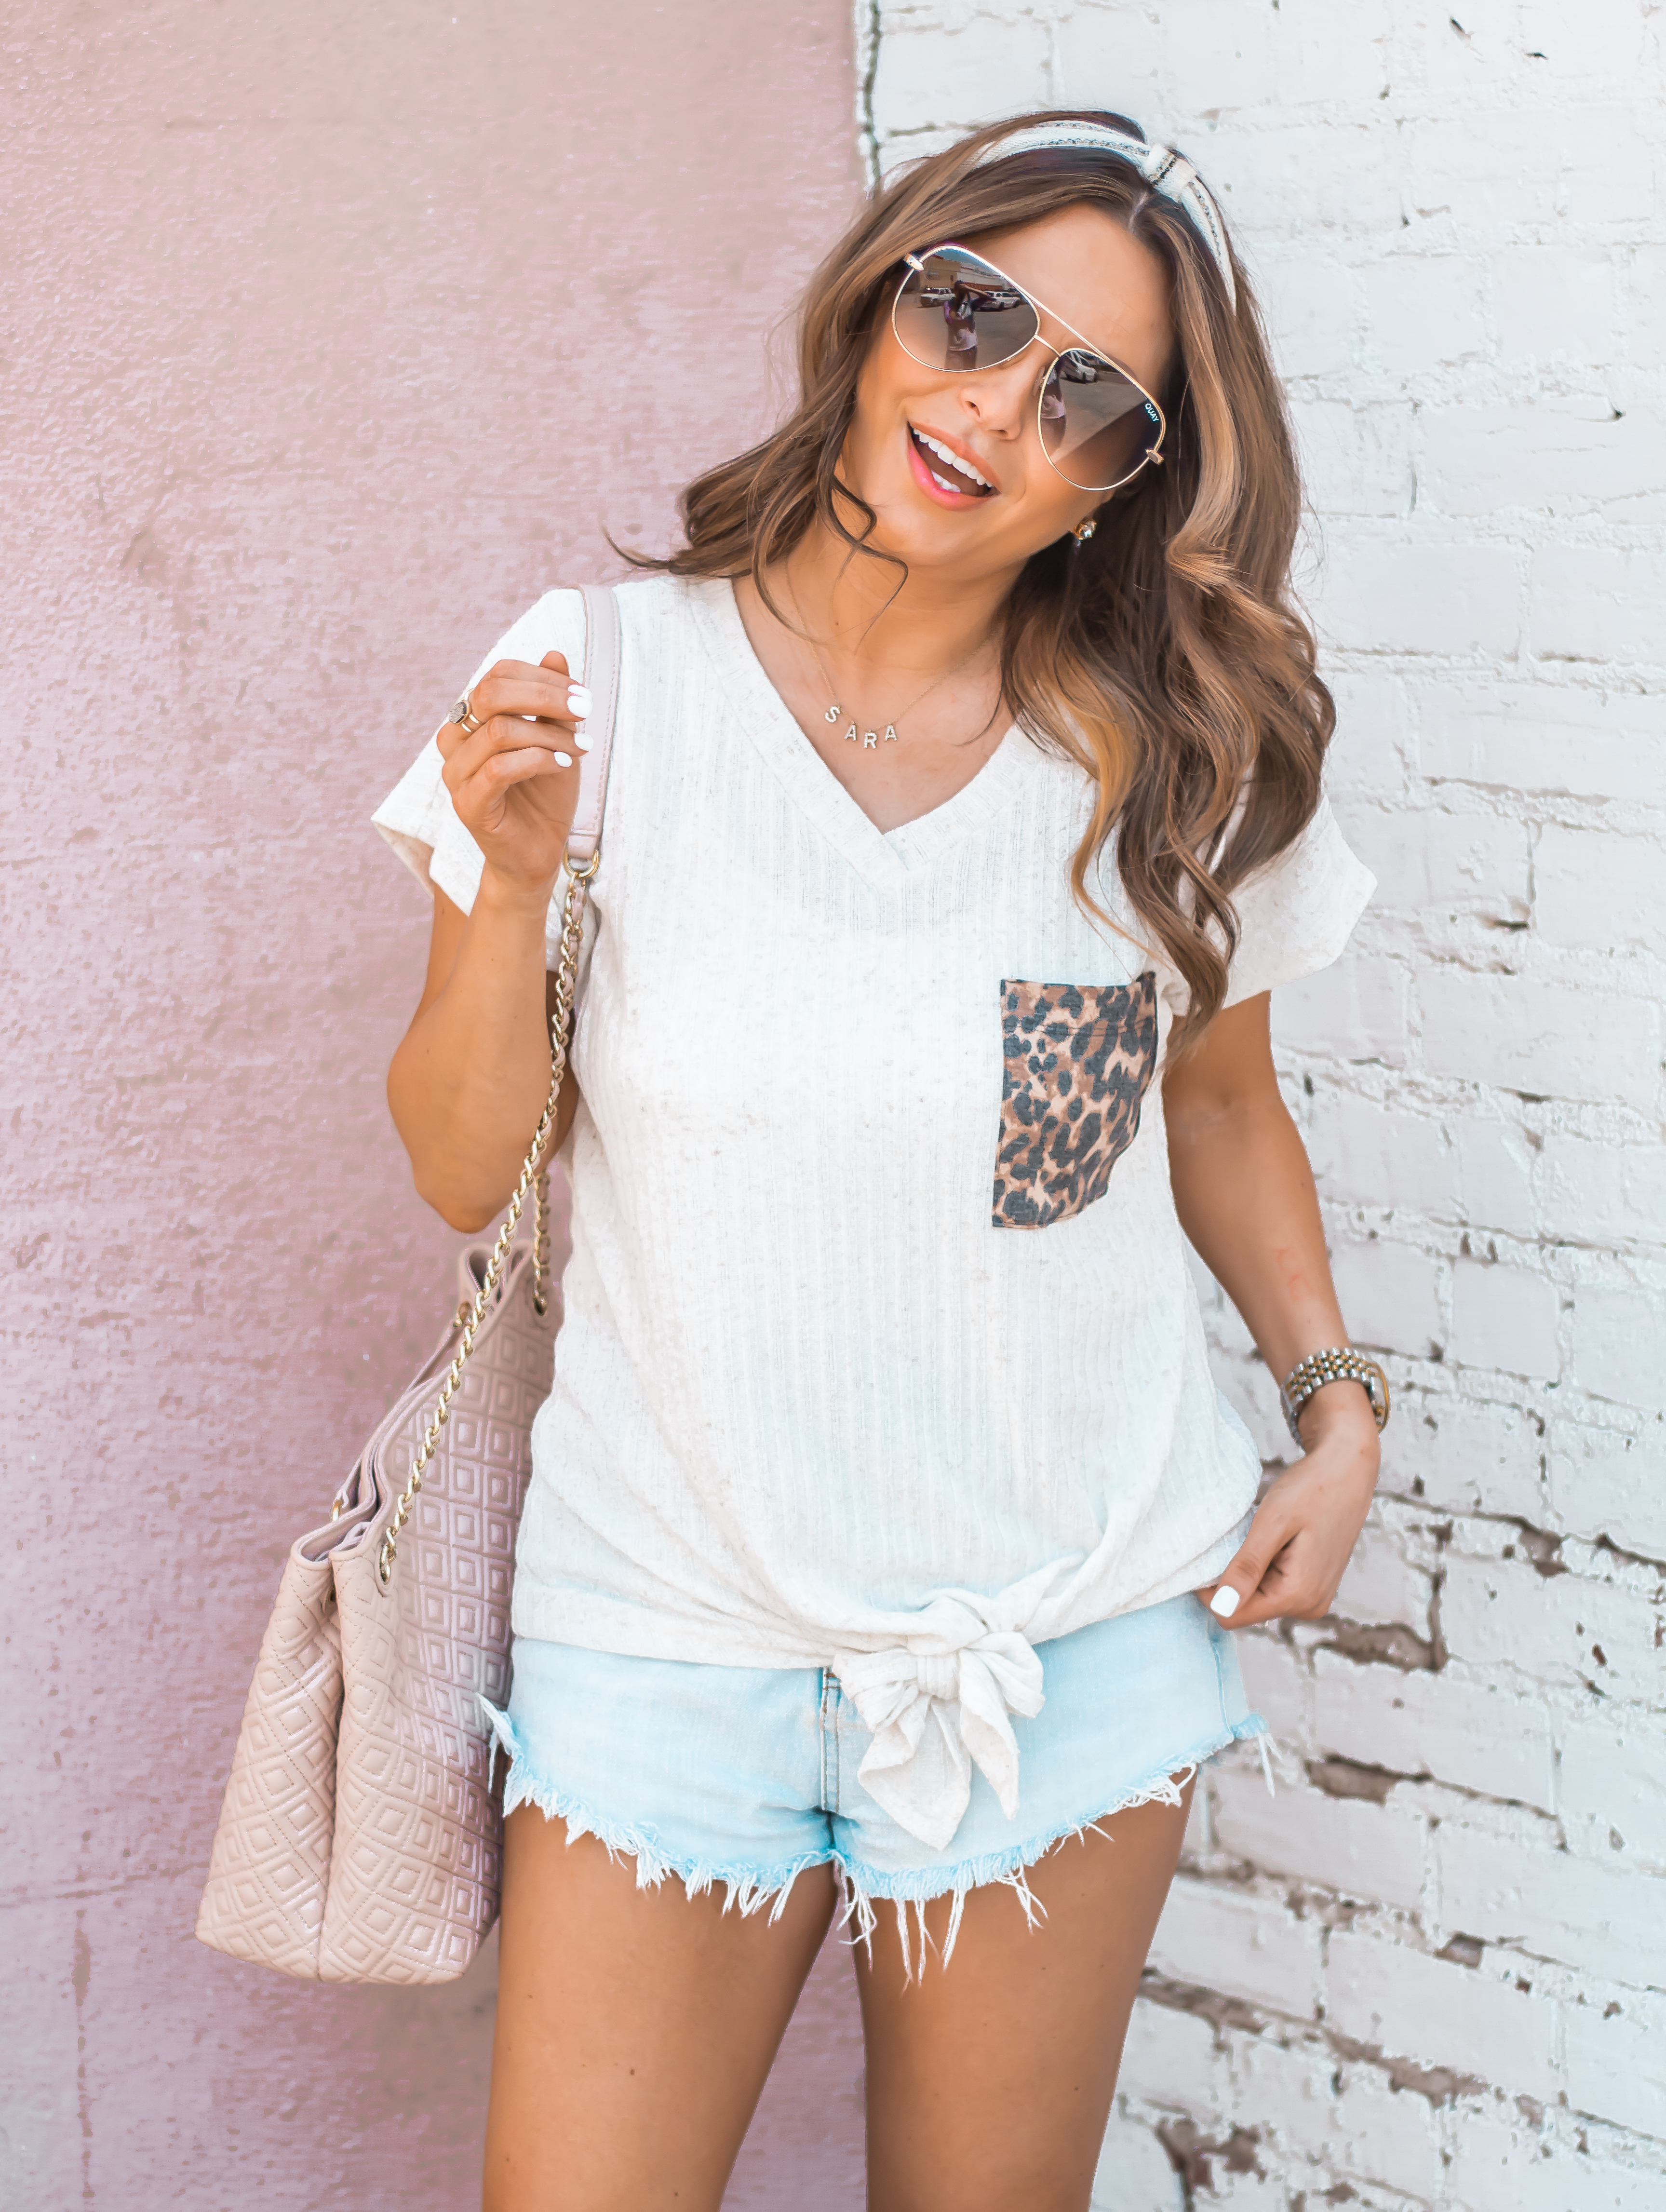 Women's Fashion-Summer Fashion-Summer Outfit Inspiration-Sabby Style-Omaha Blogger-Leopard Pocket Top-The Style Bar Boutique-Cutoff Shorts-Espadrille Wedges-Marc Fisher Wedges-Tory Burch Fleming-Quay Sunglasses-Headband Trend-Omaha-Nebraska-Midwest Blogger-9